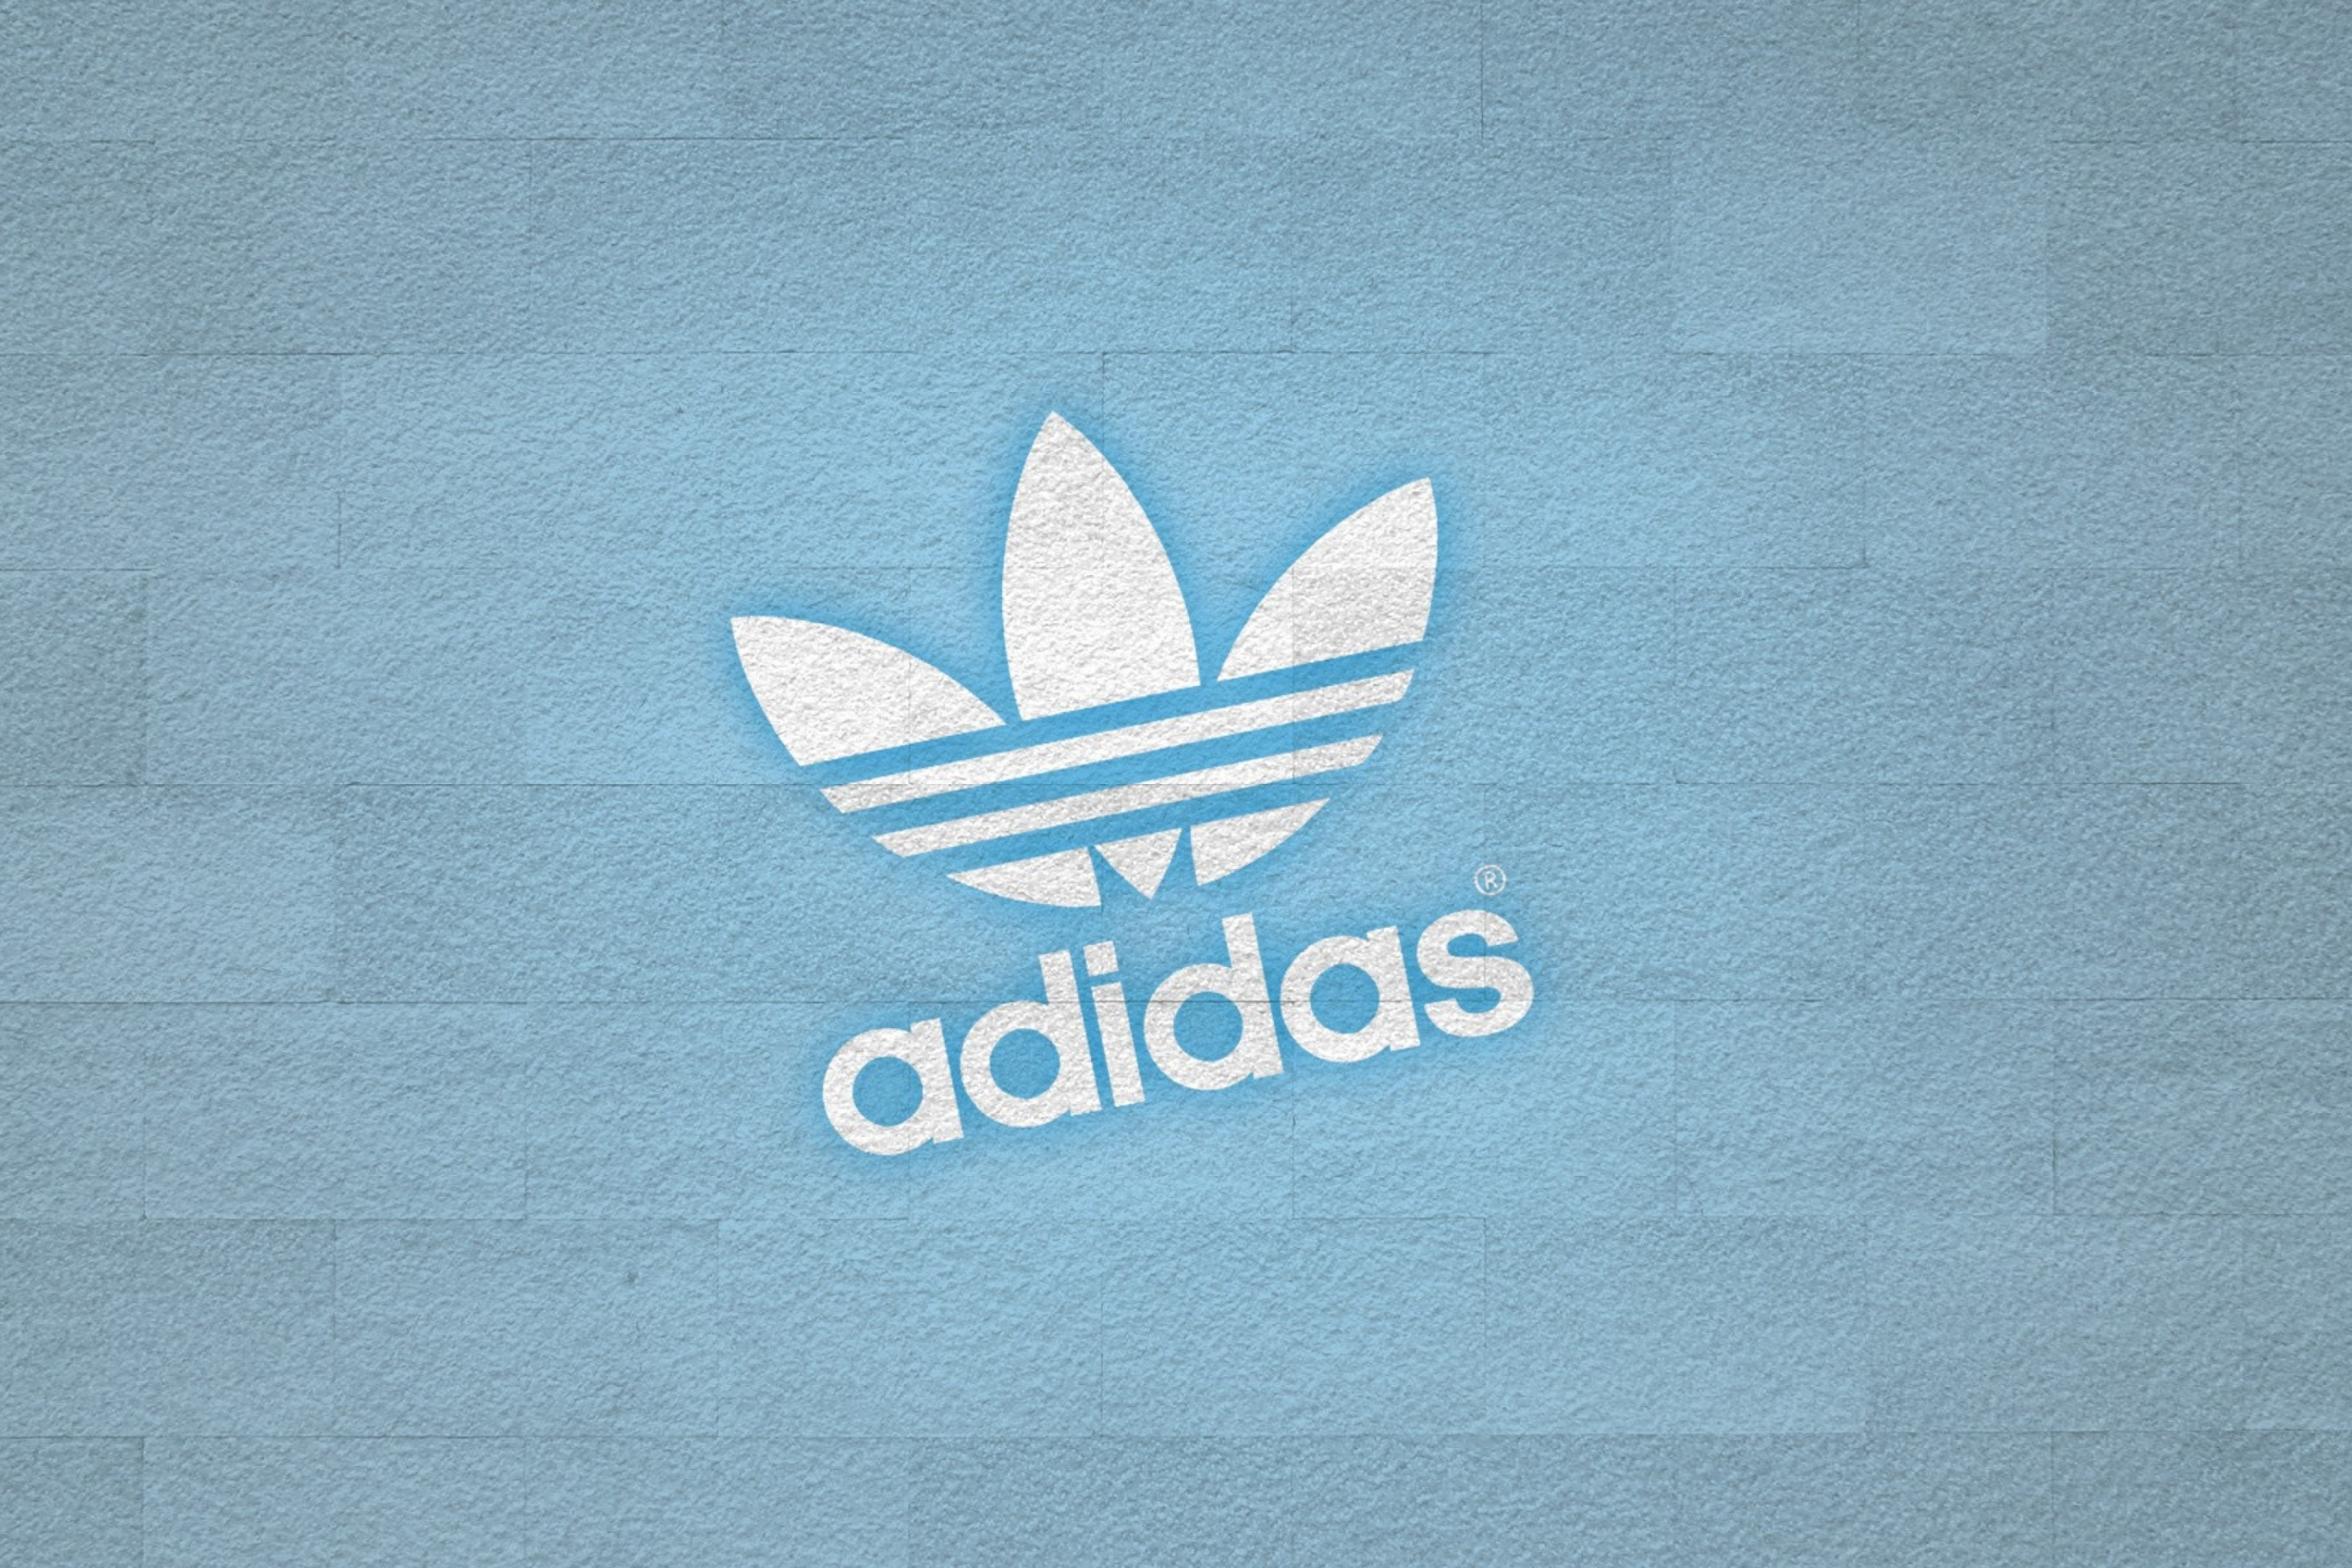 Adidas Logo wallpaper 2880x1920